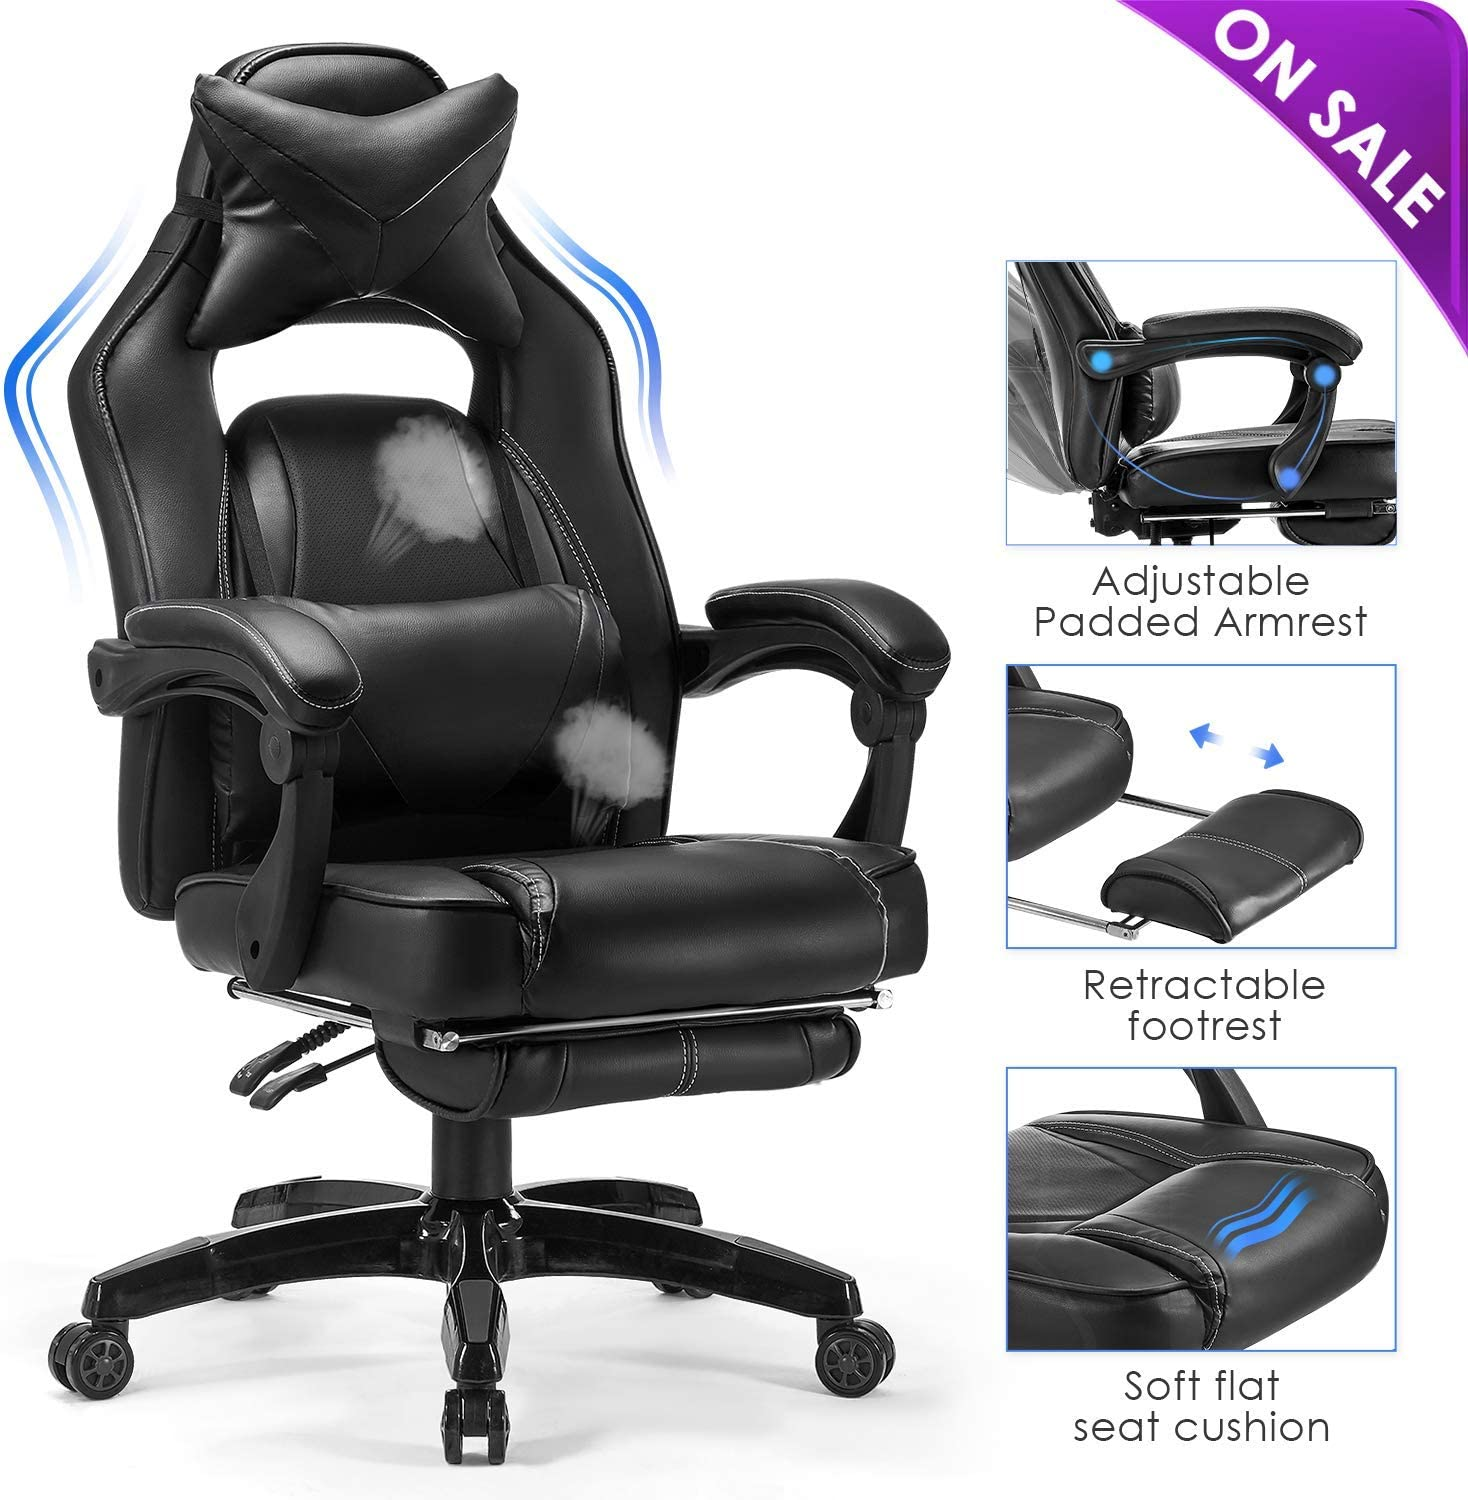 Kealive Gaming Chair Reclining Racing Chair, Ergonomic Office Chair with Breathable PU Leather and High Back, Adjustable Swivel Computer Chair with Headrest and Lumbar Support Footrest